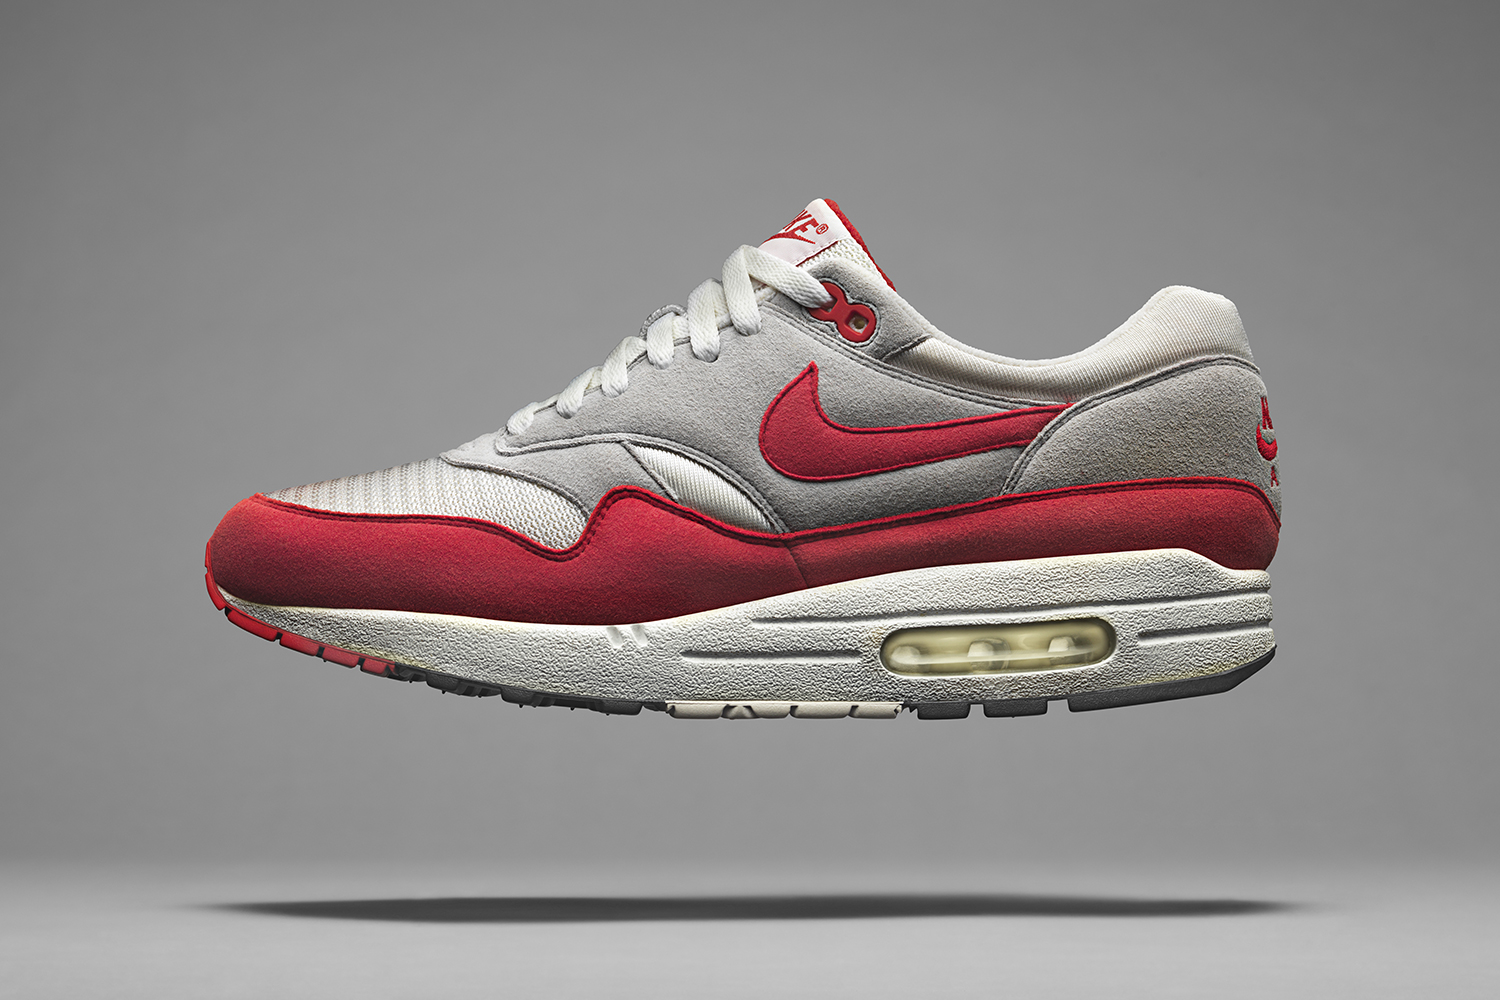 The Beginner s Guide to OG Nike Air Max Colorways 78bea5056